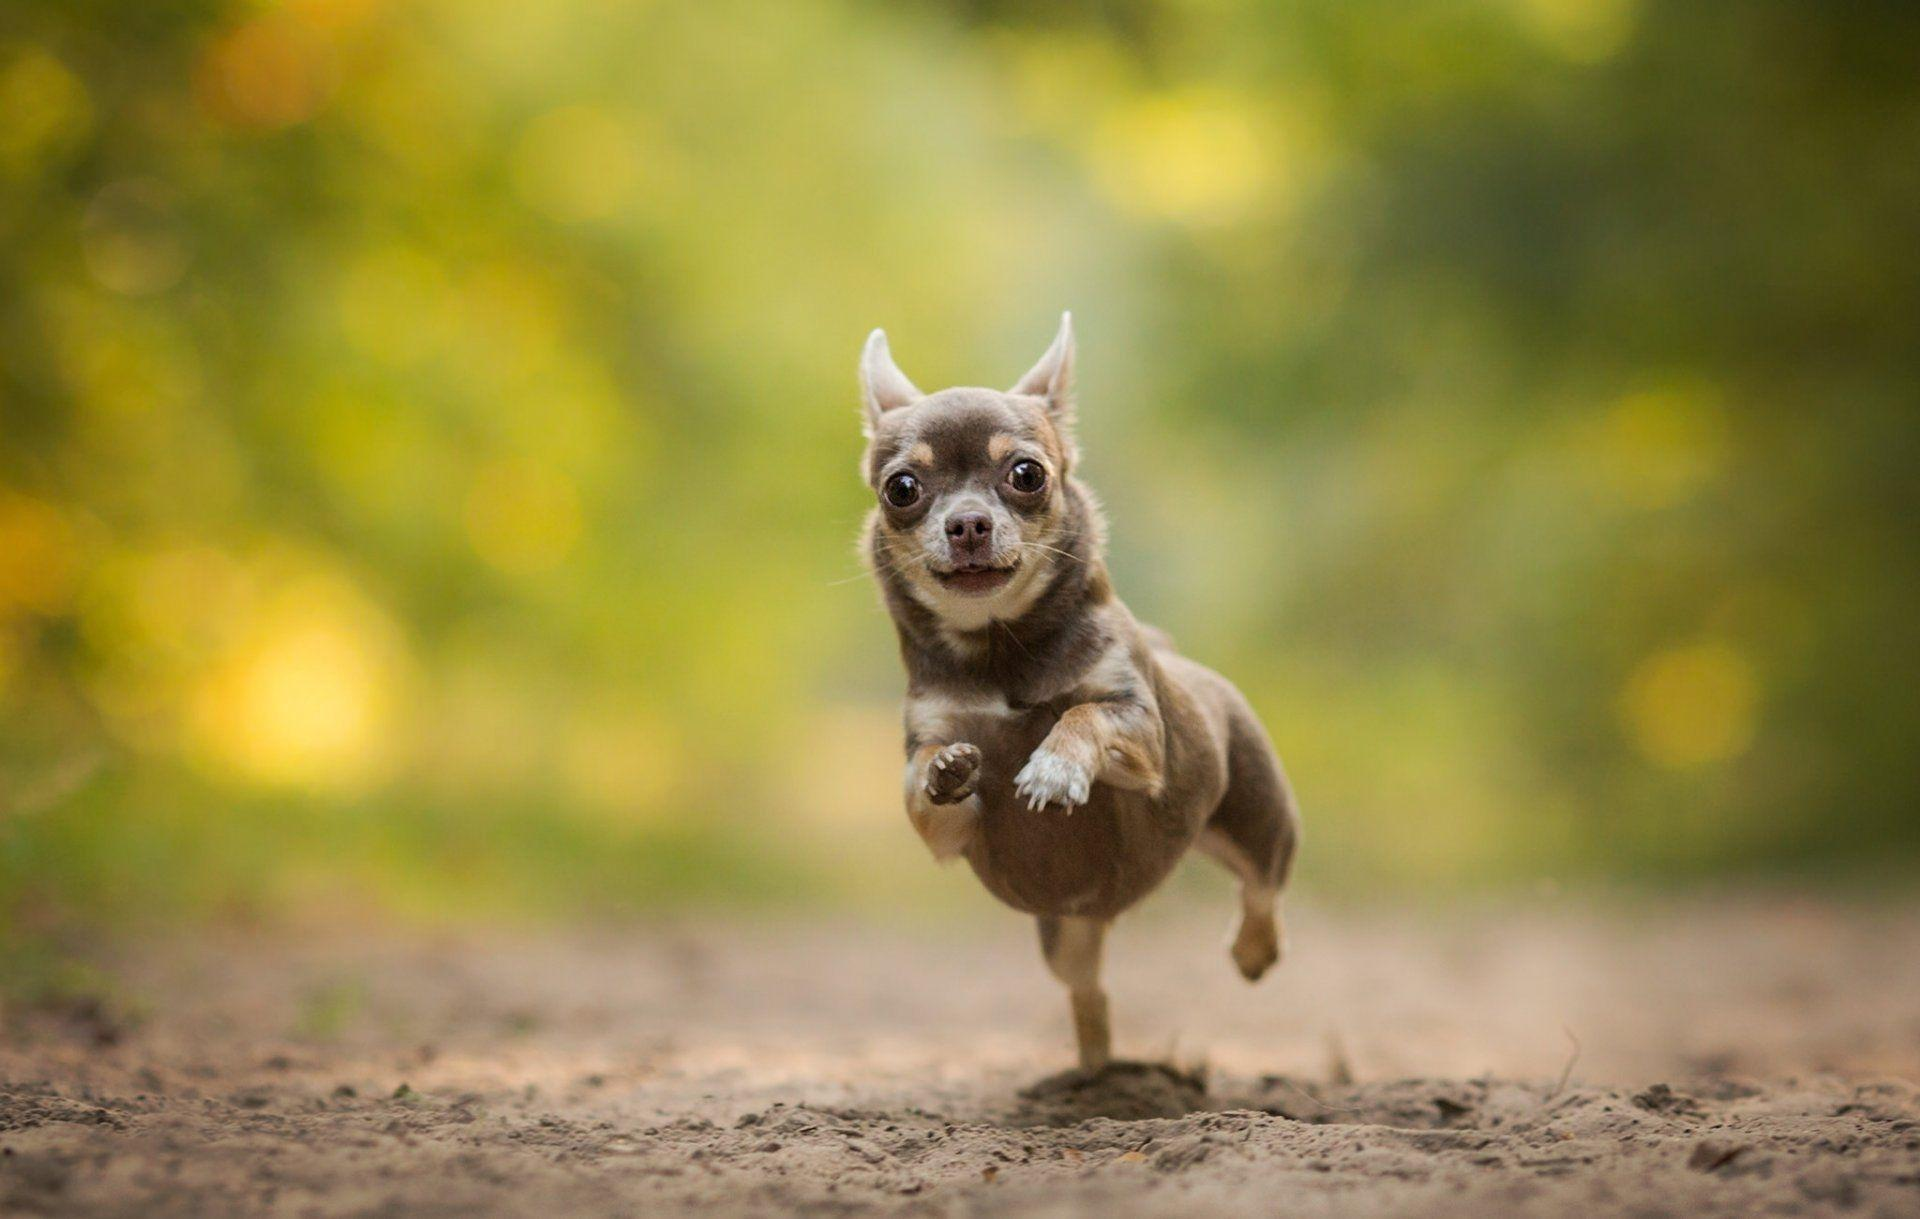 Chihuahua hd wallpapers wallpaper cave free chihuahua wallpaper for desktop hd wallpapers pinterest voltagebd Images